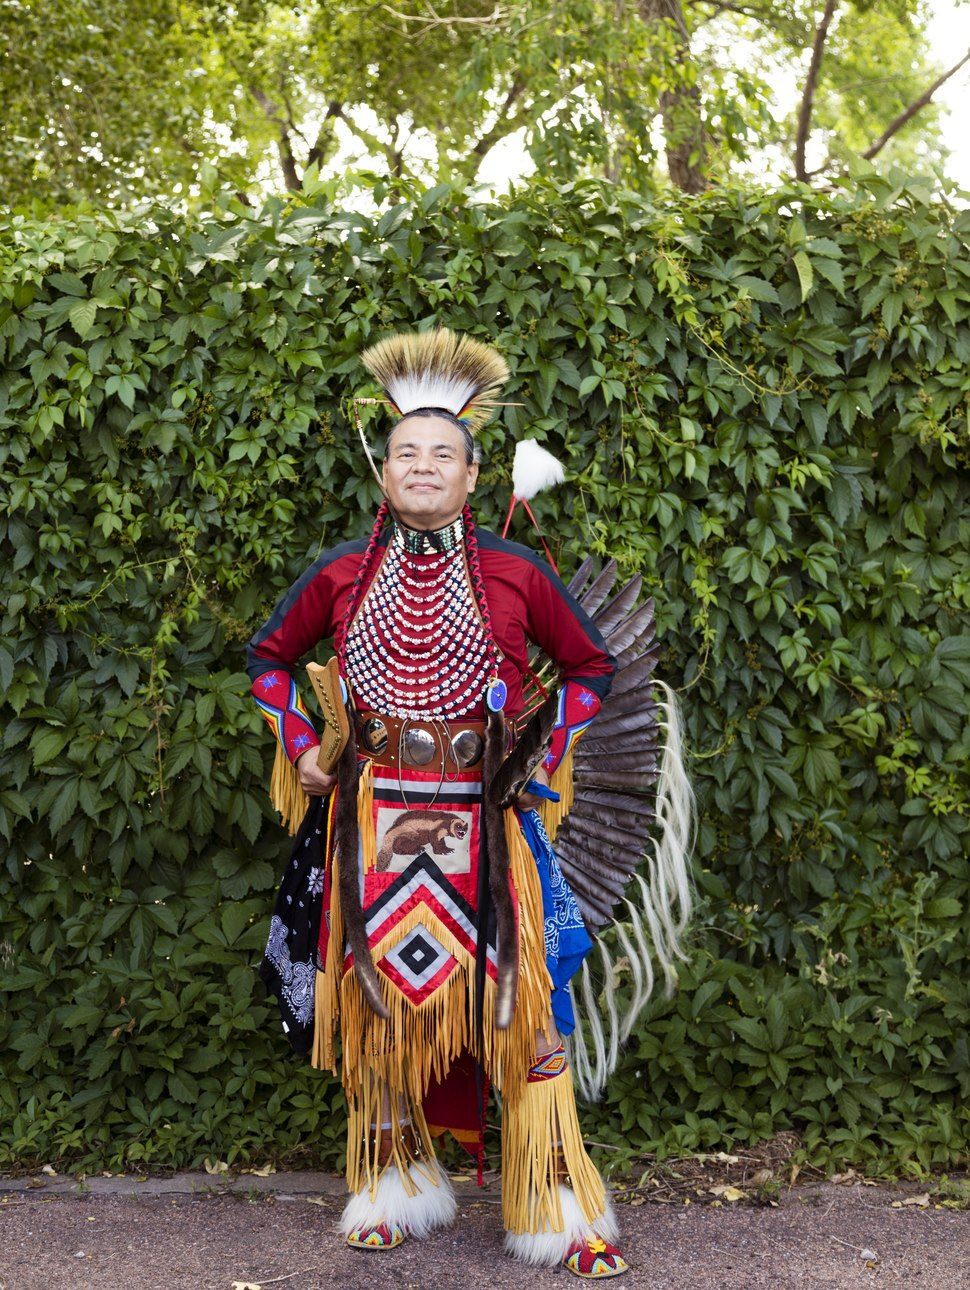 Will Yaska of Pueblo, Colorado, a Koyukon (an Alaska Native Athabaskan people), was among the participants at a Colorado Springs Native American Inter-Tribal Powwow and festival in that central LCCN2015633372